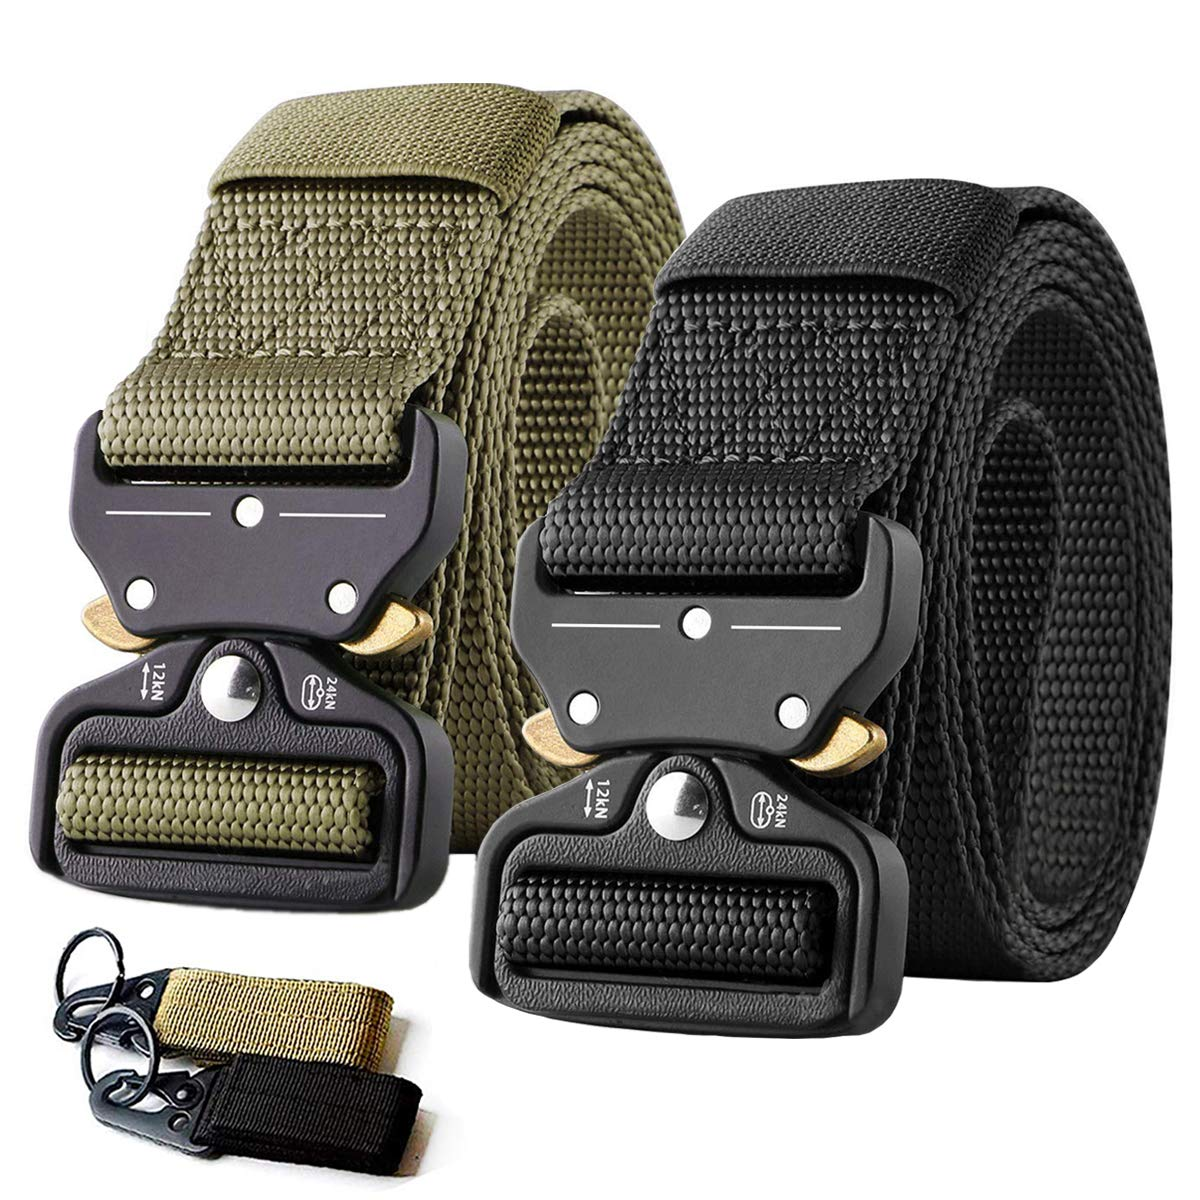 Maibelts 2 Pack Tactical Belt,Military Style Quick Release Belt,1.5'' Nylon Riggers Belts for Men,Heavy-Duty Quick-Release Metal Buckle